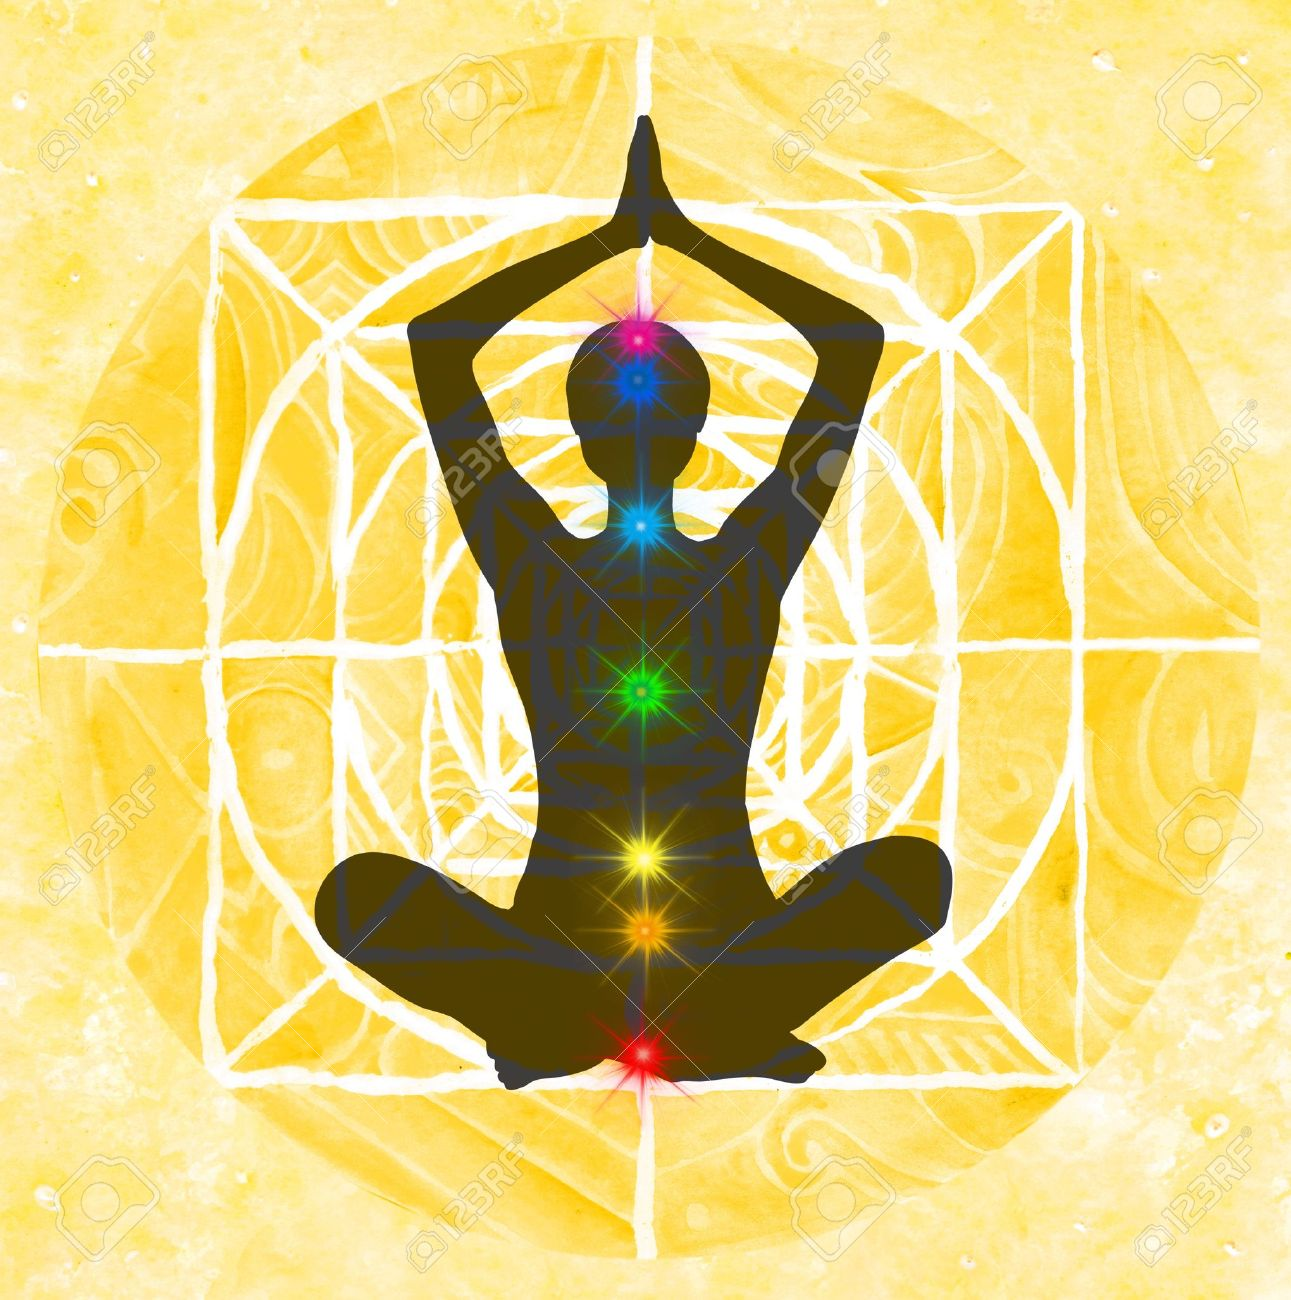 Lotus meditation pose with hands up in prayer. Padmasana with colored chakra points. Stock Photo - 11556788